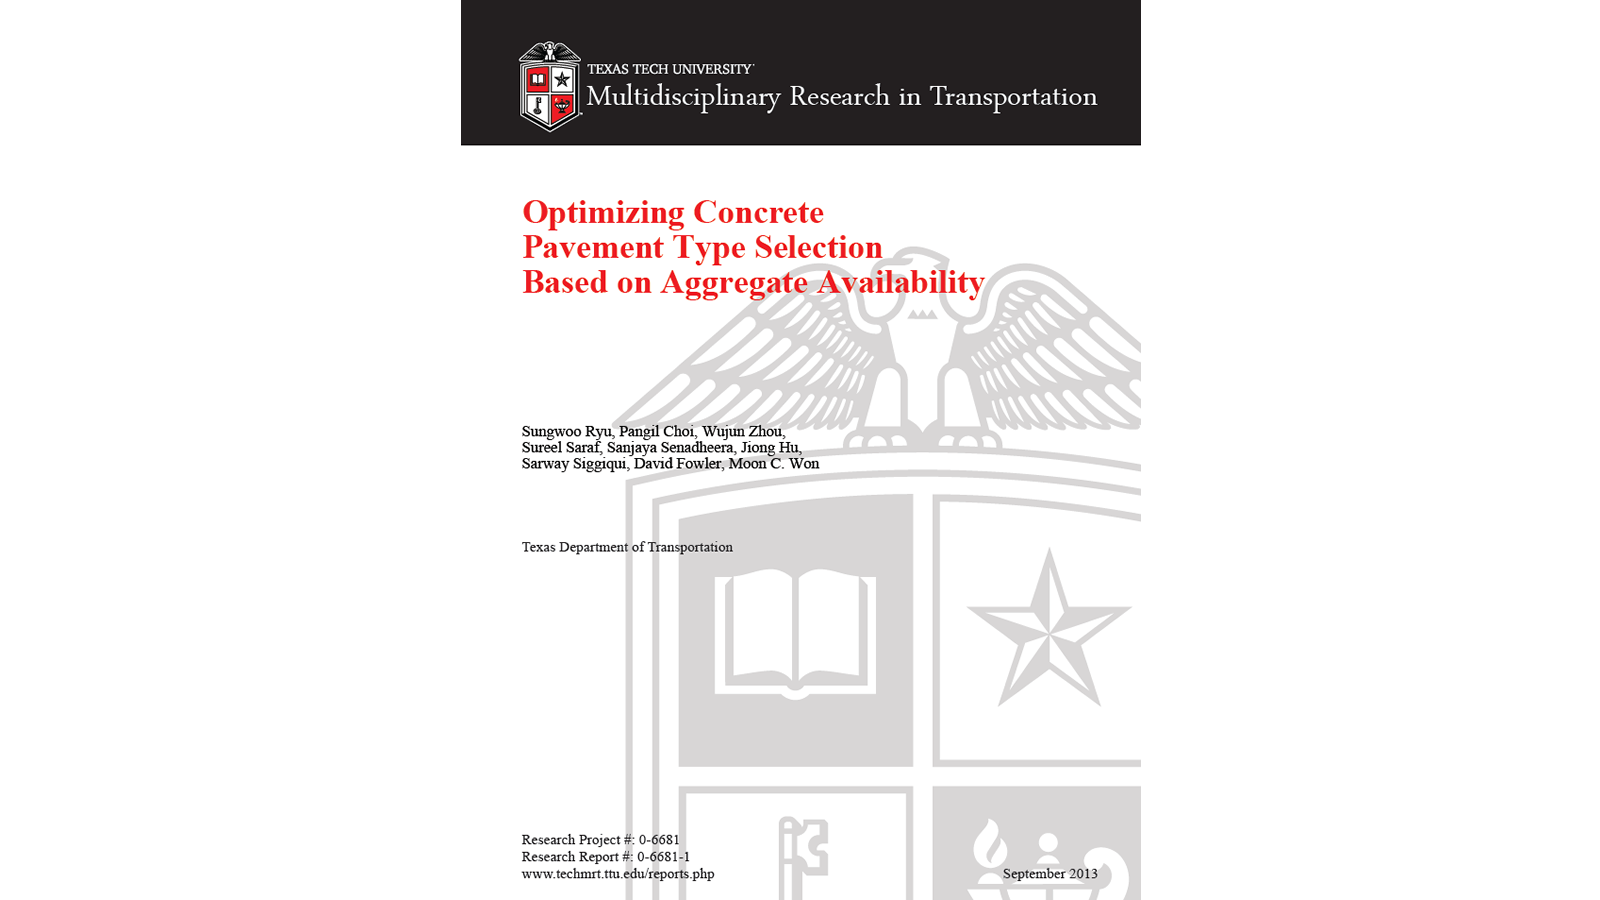 Optimizing Concrete Pavement Type Selection Based on Aggregate Availability (FHWA/TX-13-0-6681-1)